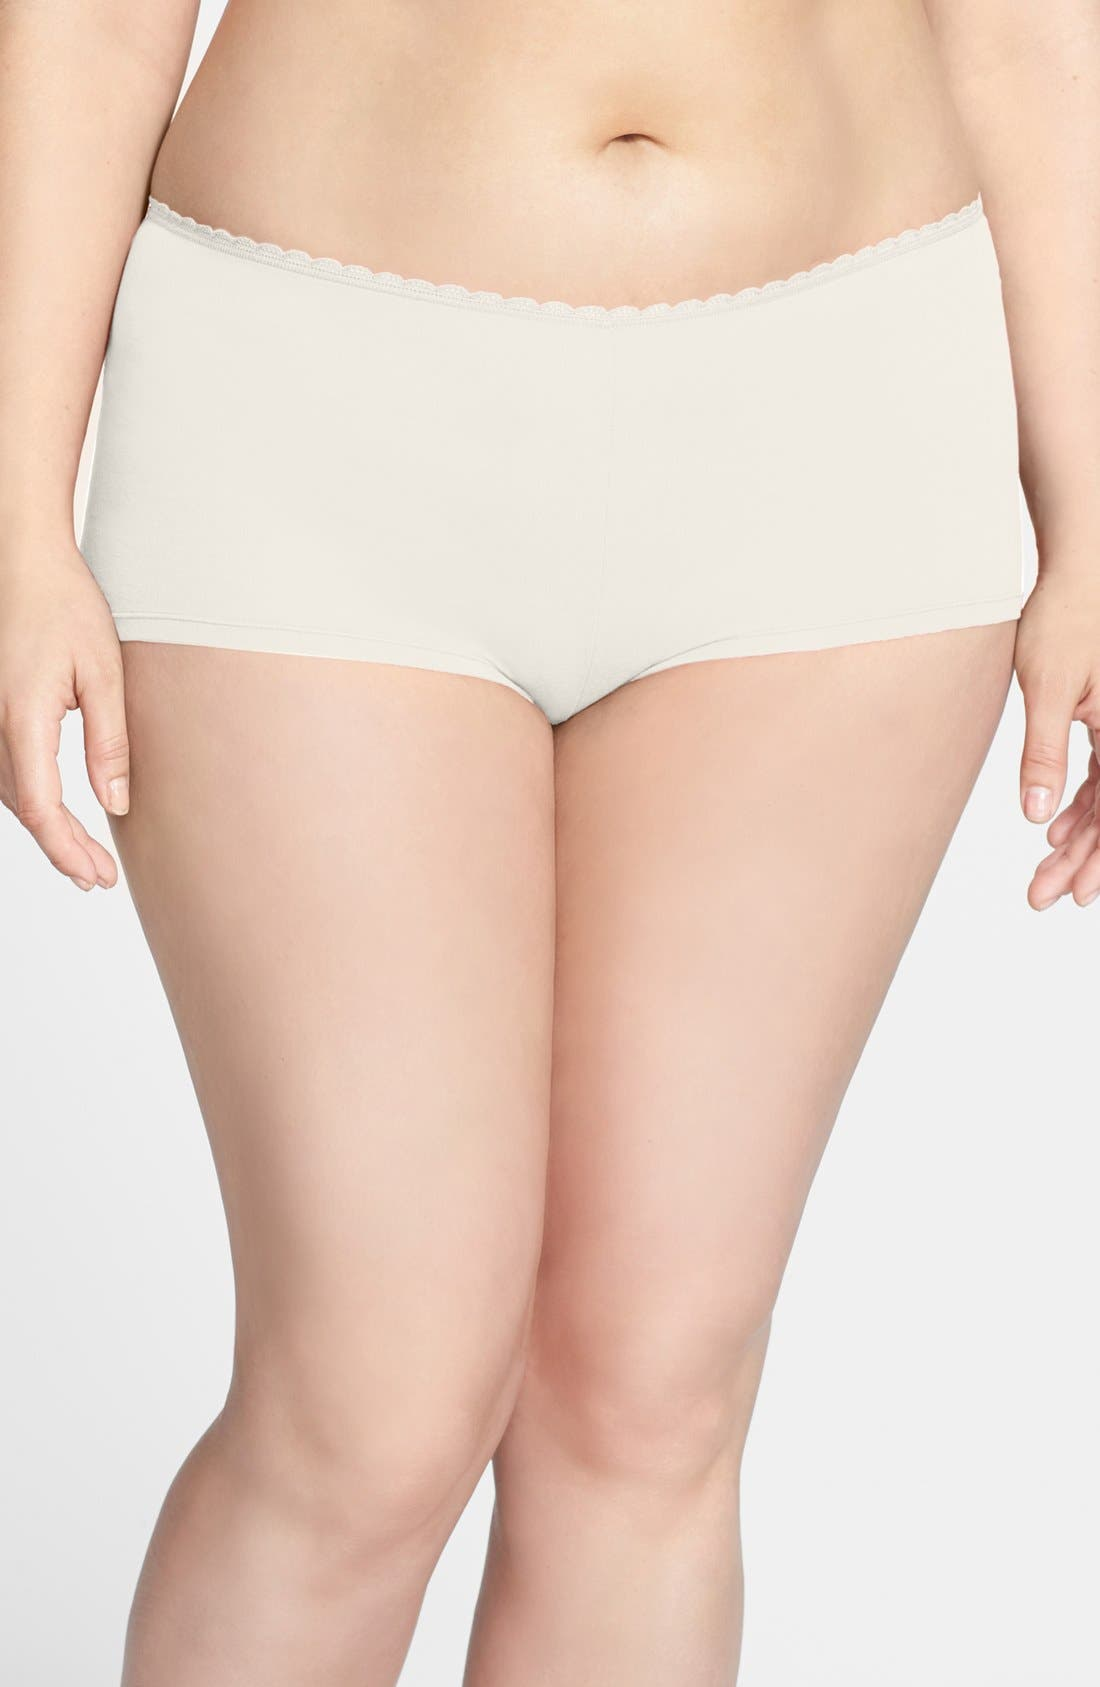 Alternate Image 1 Selected - Nordstrom Cotton Blend Boyshorts (Plus Size) (3 for $25)